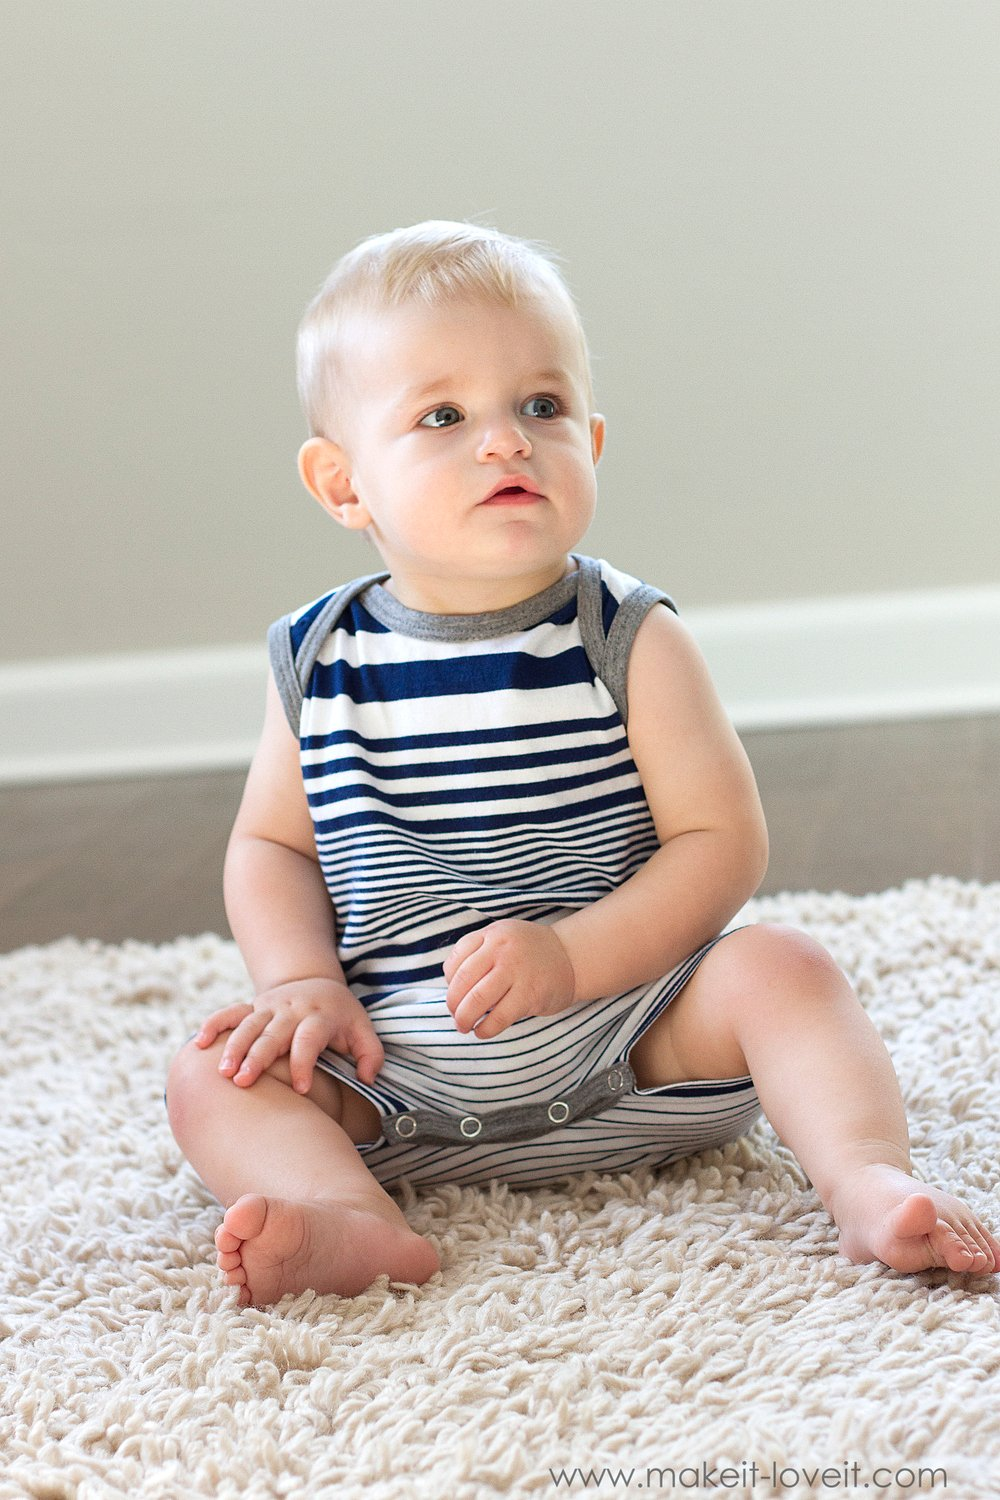 DIY: Tank Top Romper with Envelope Neckline (...from an old Tshirt) | via Make It and Love It